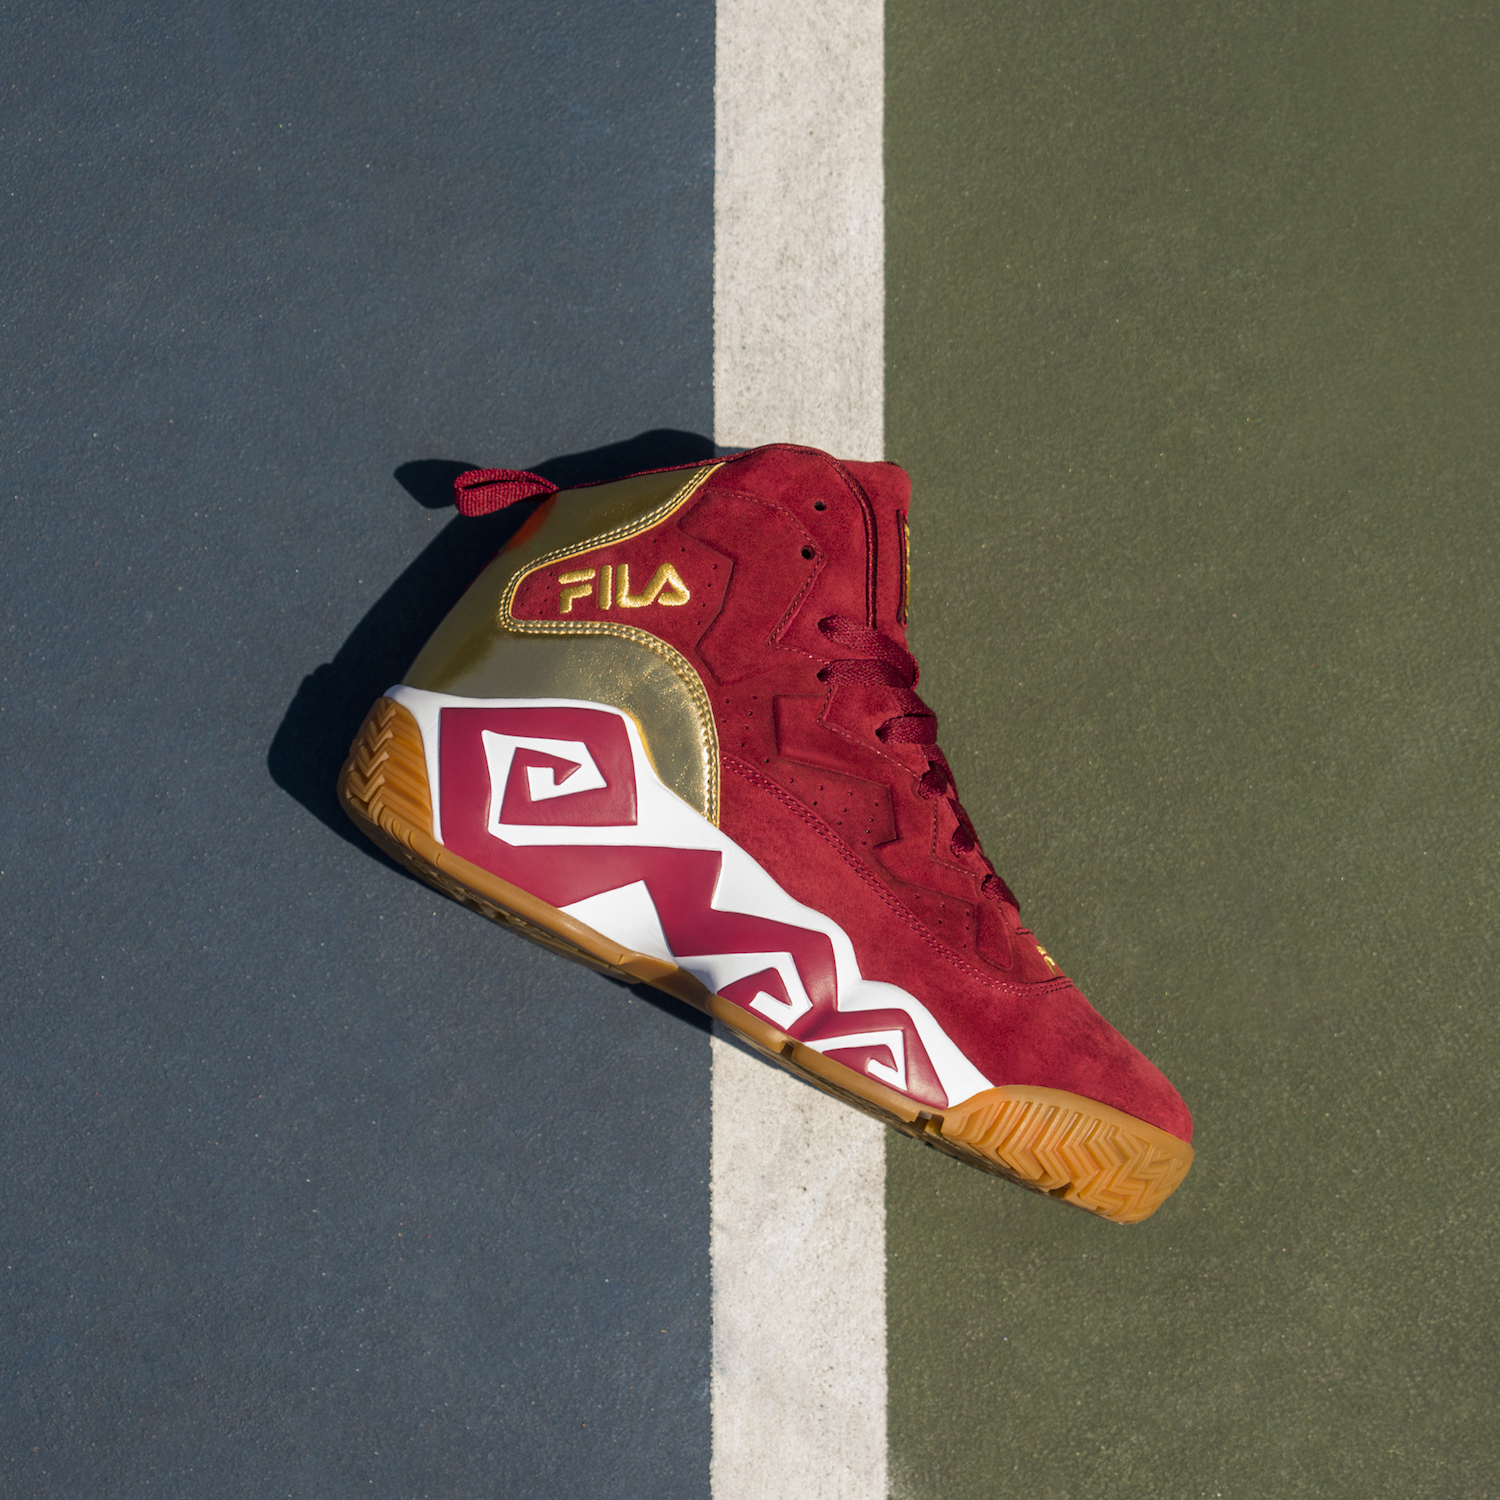 FILA MB royal beginnings 5